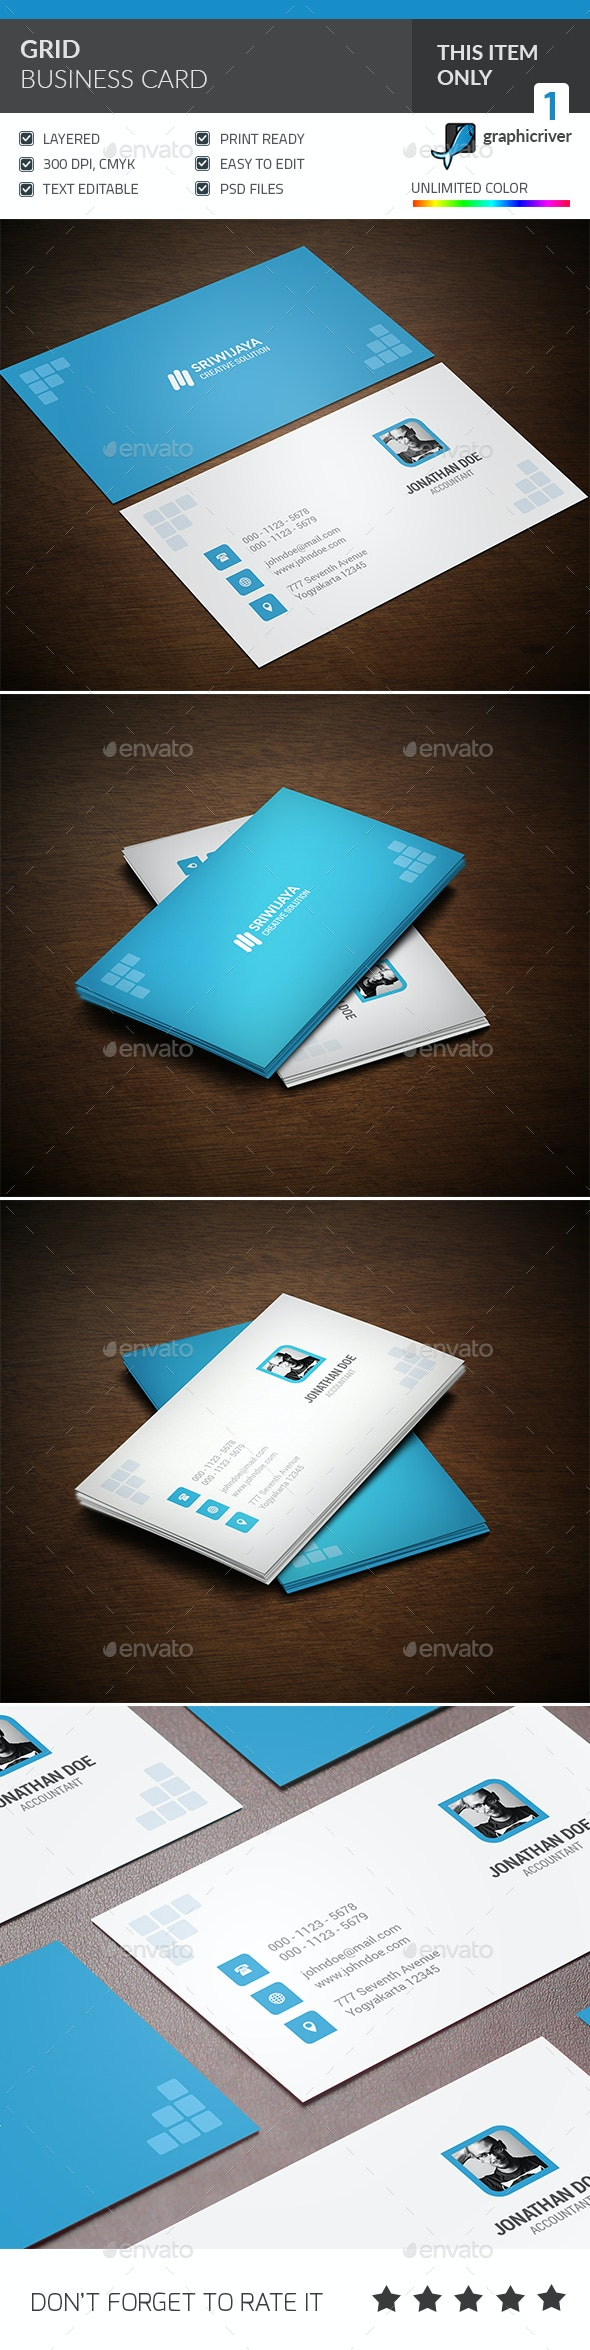 Grid Business Card - Corporate Business Cards